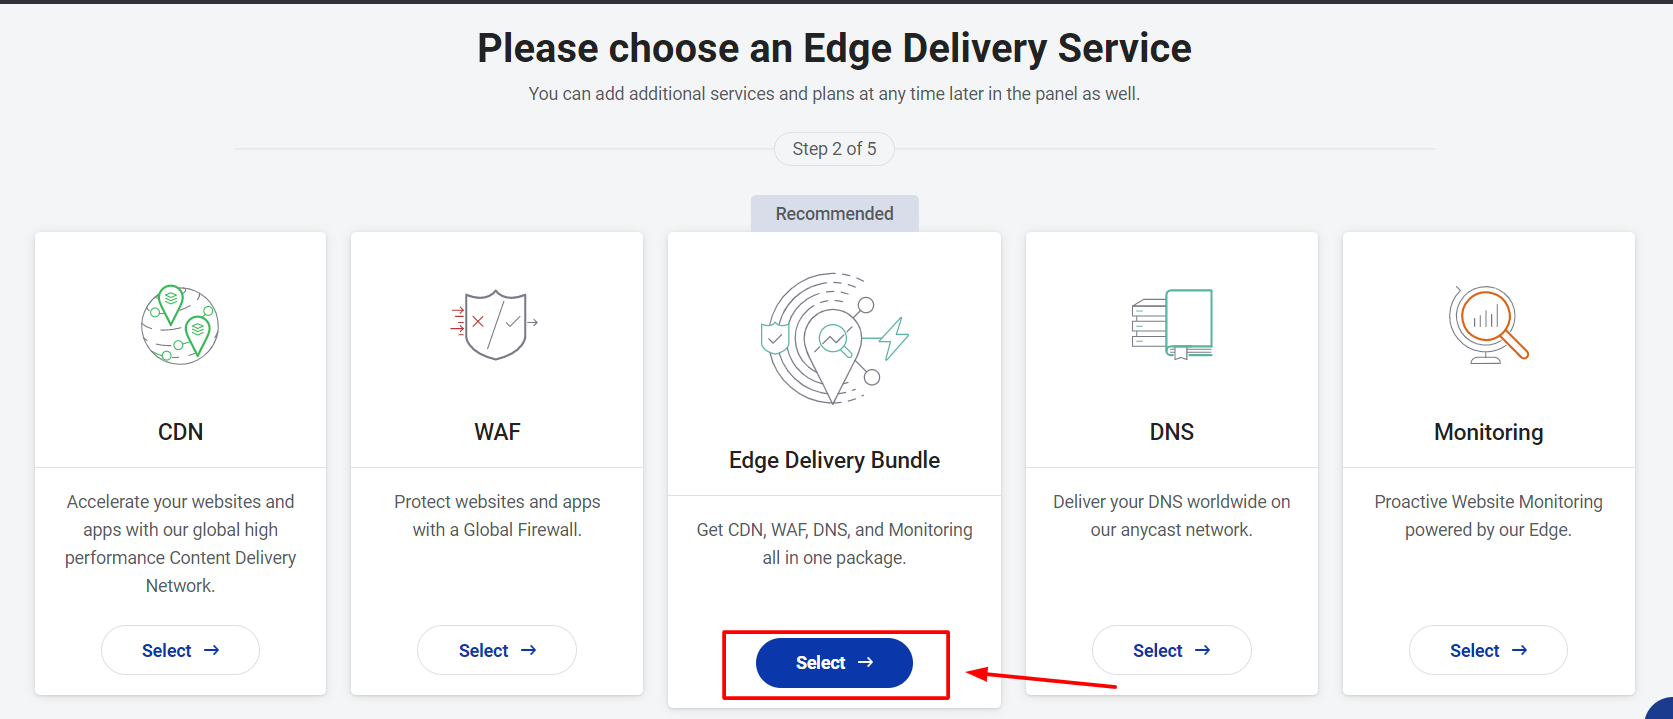 Choose an Edge Delivery Service